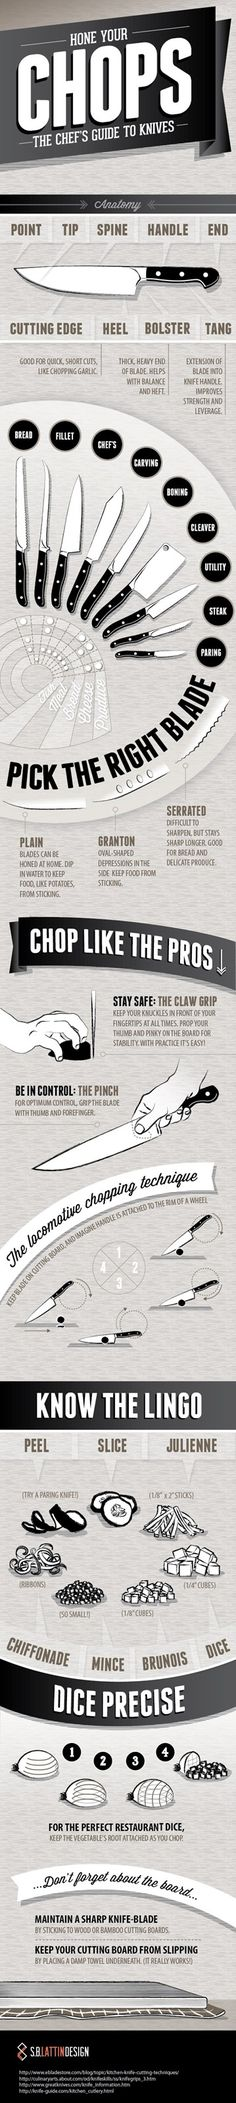 Knife Guide of the Day...haha now I can tell Max I know all of this!